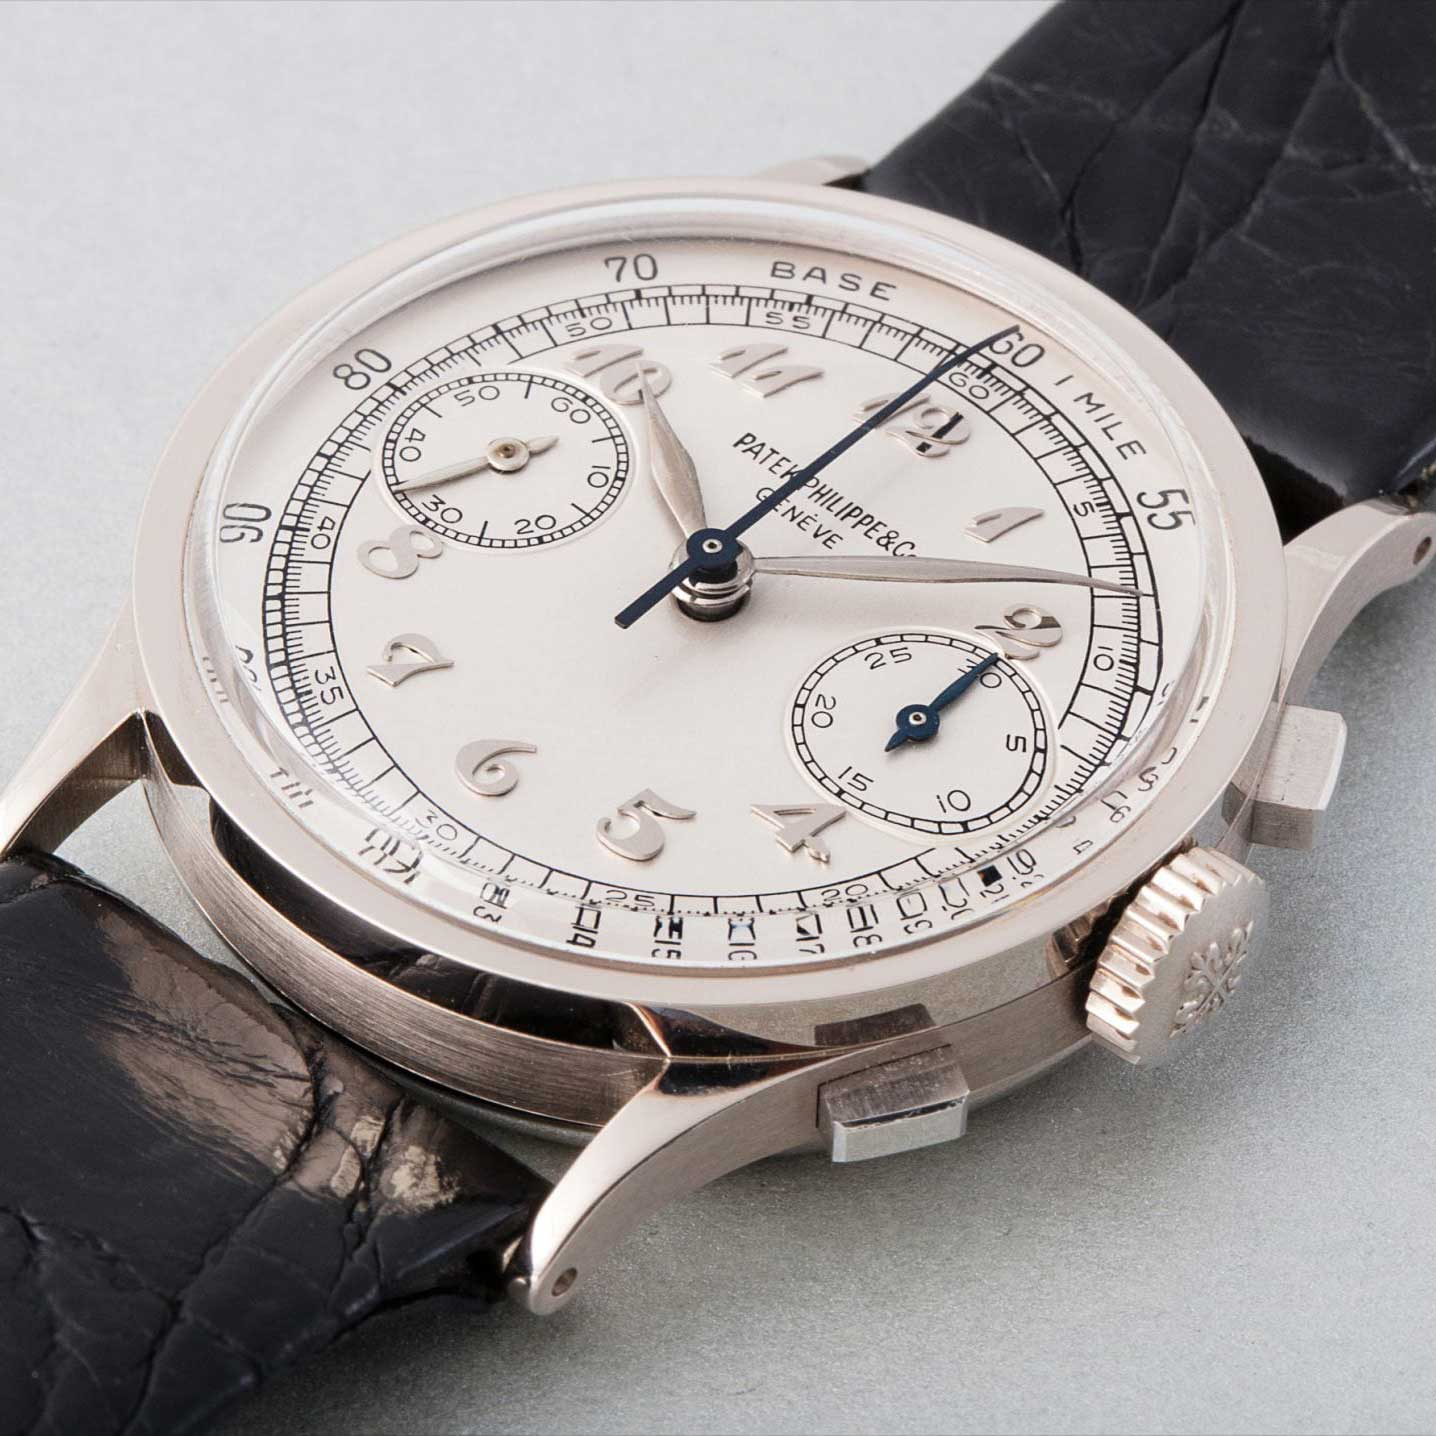 1941 Patek Philippe ref. 533 white gold chronograph with Breguet numerals (Image: phillipswatches.com)